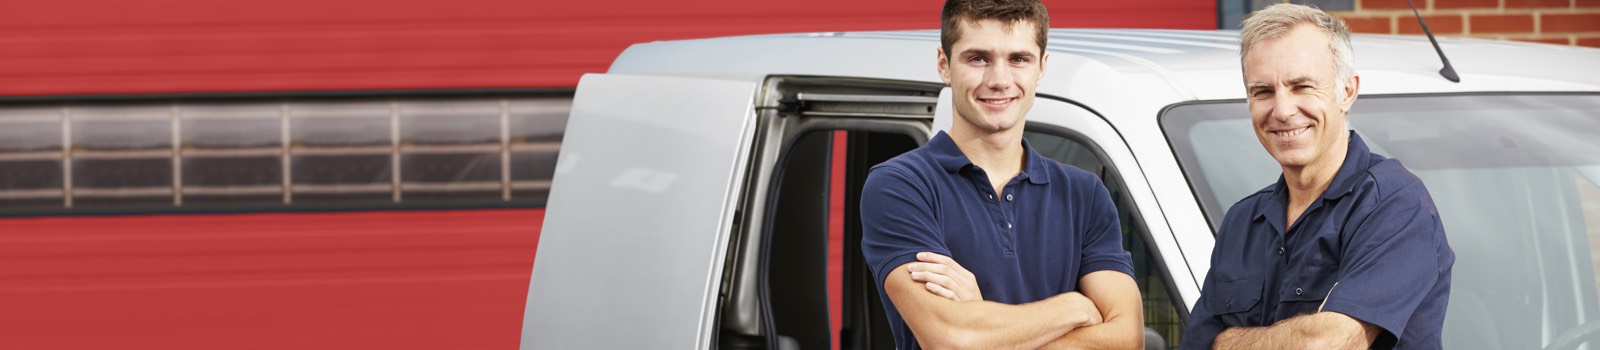 Two men with white van having red background